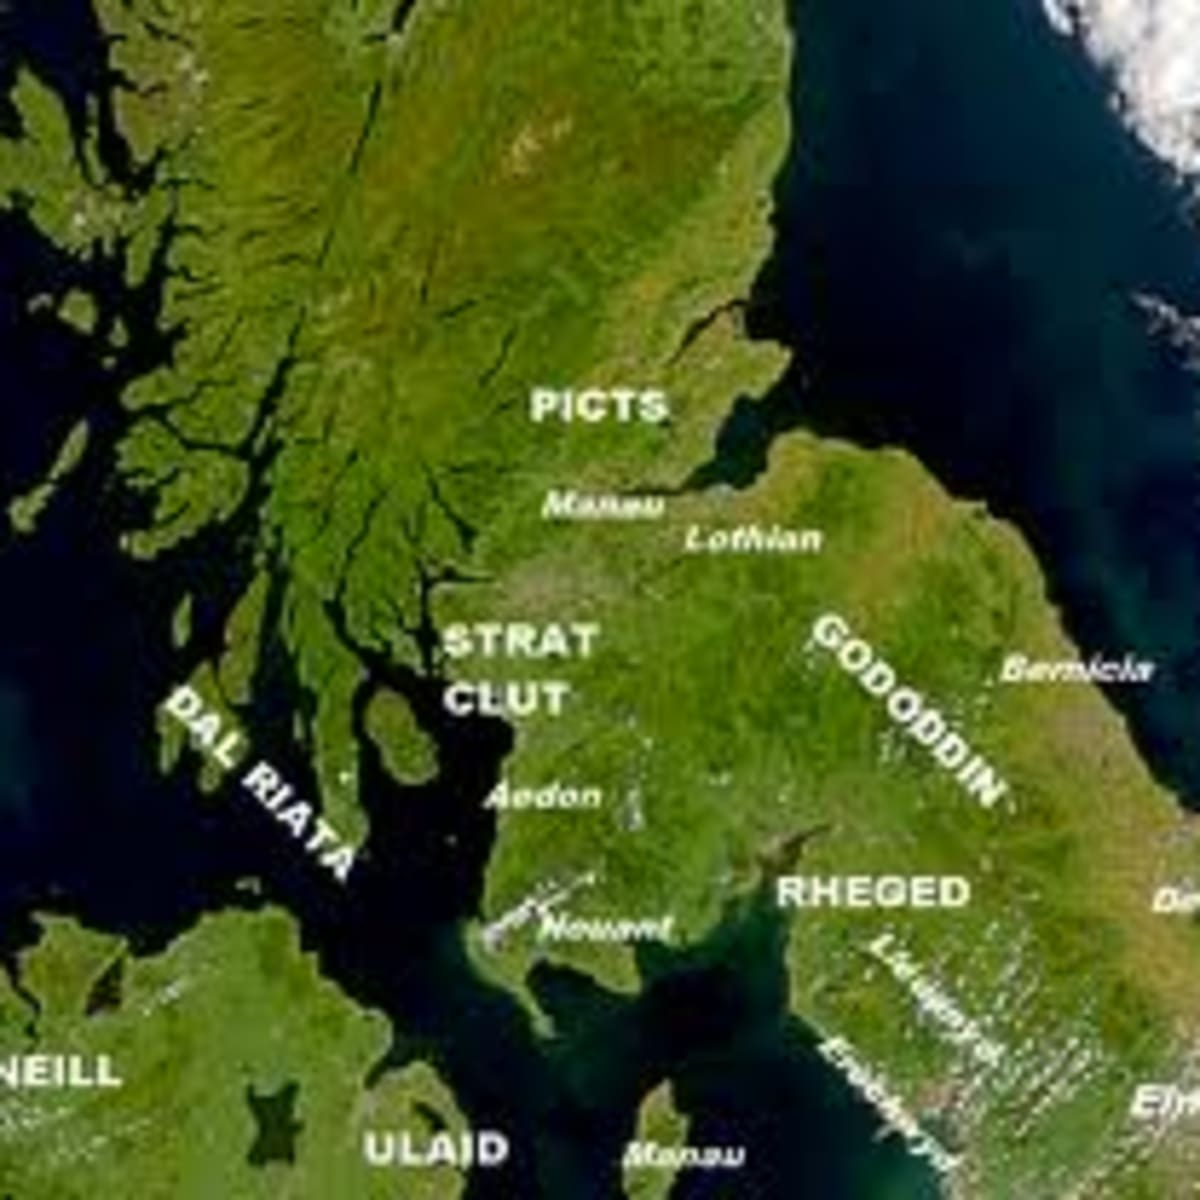 The Lost Kingdom of Pictland: Scotland's Forgotten Legacy - HubPages